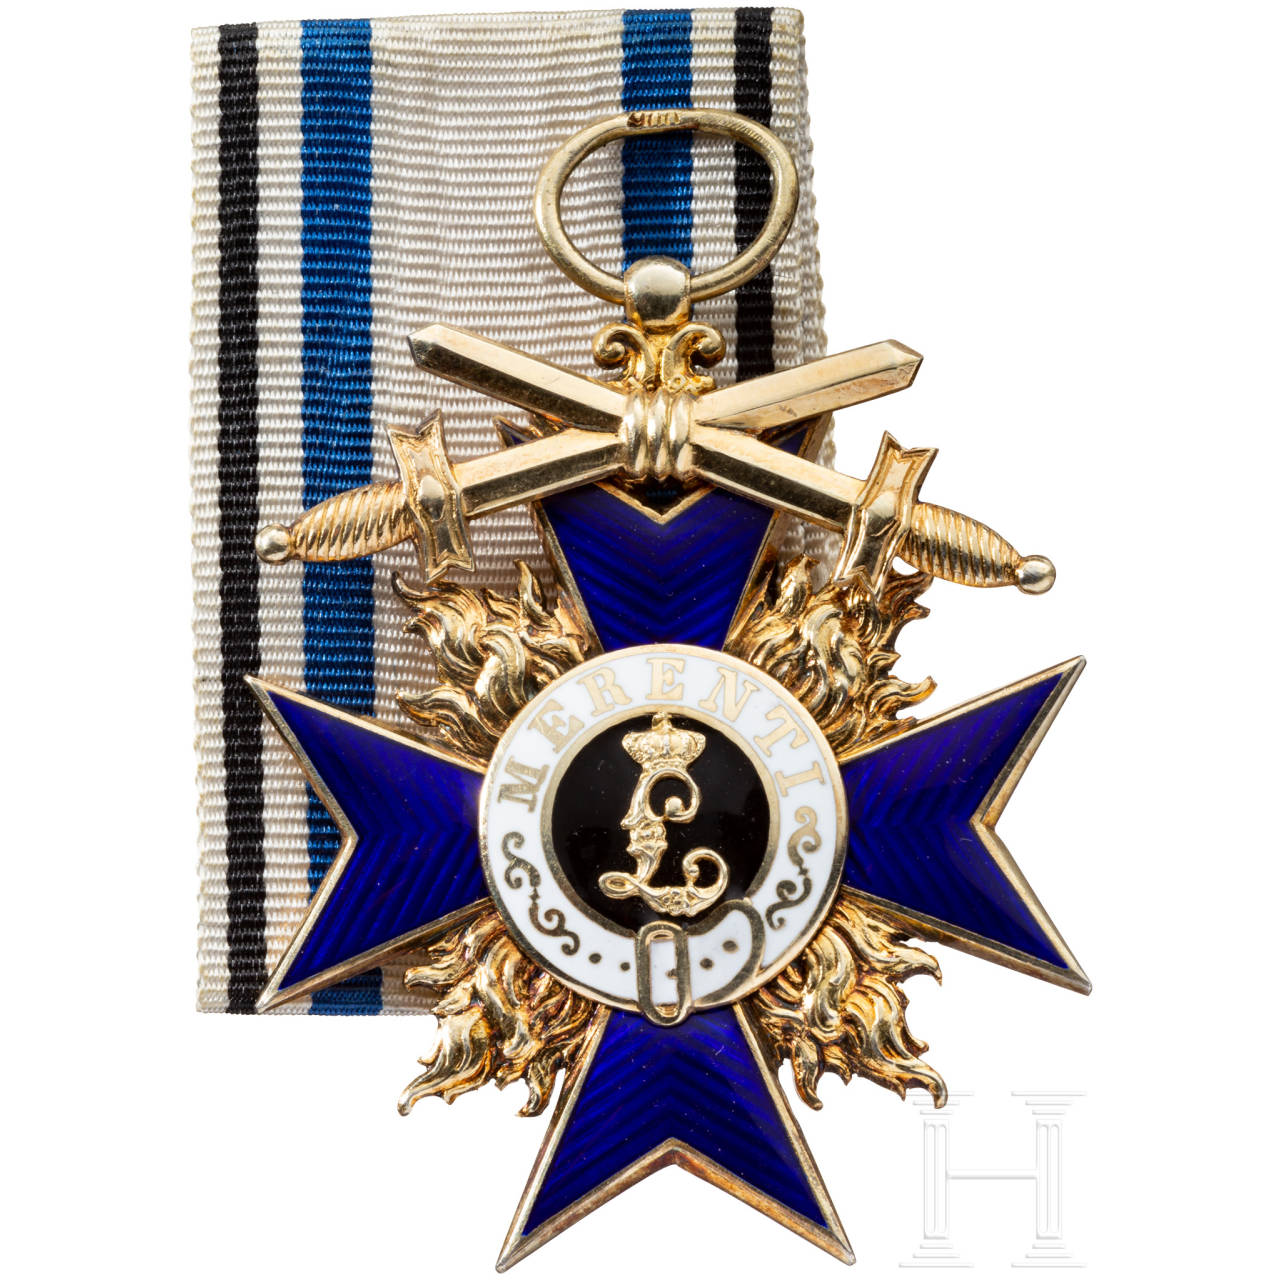 Military Merit Order - Cross 3rd class with swords, made by Hemmerle